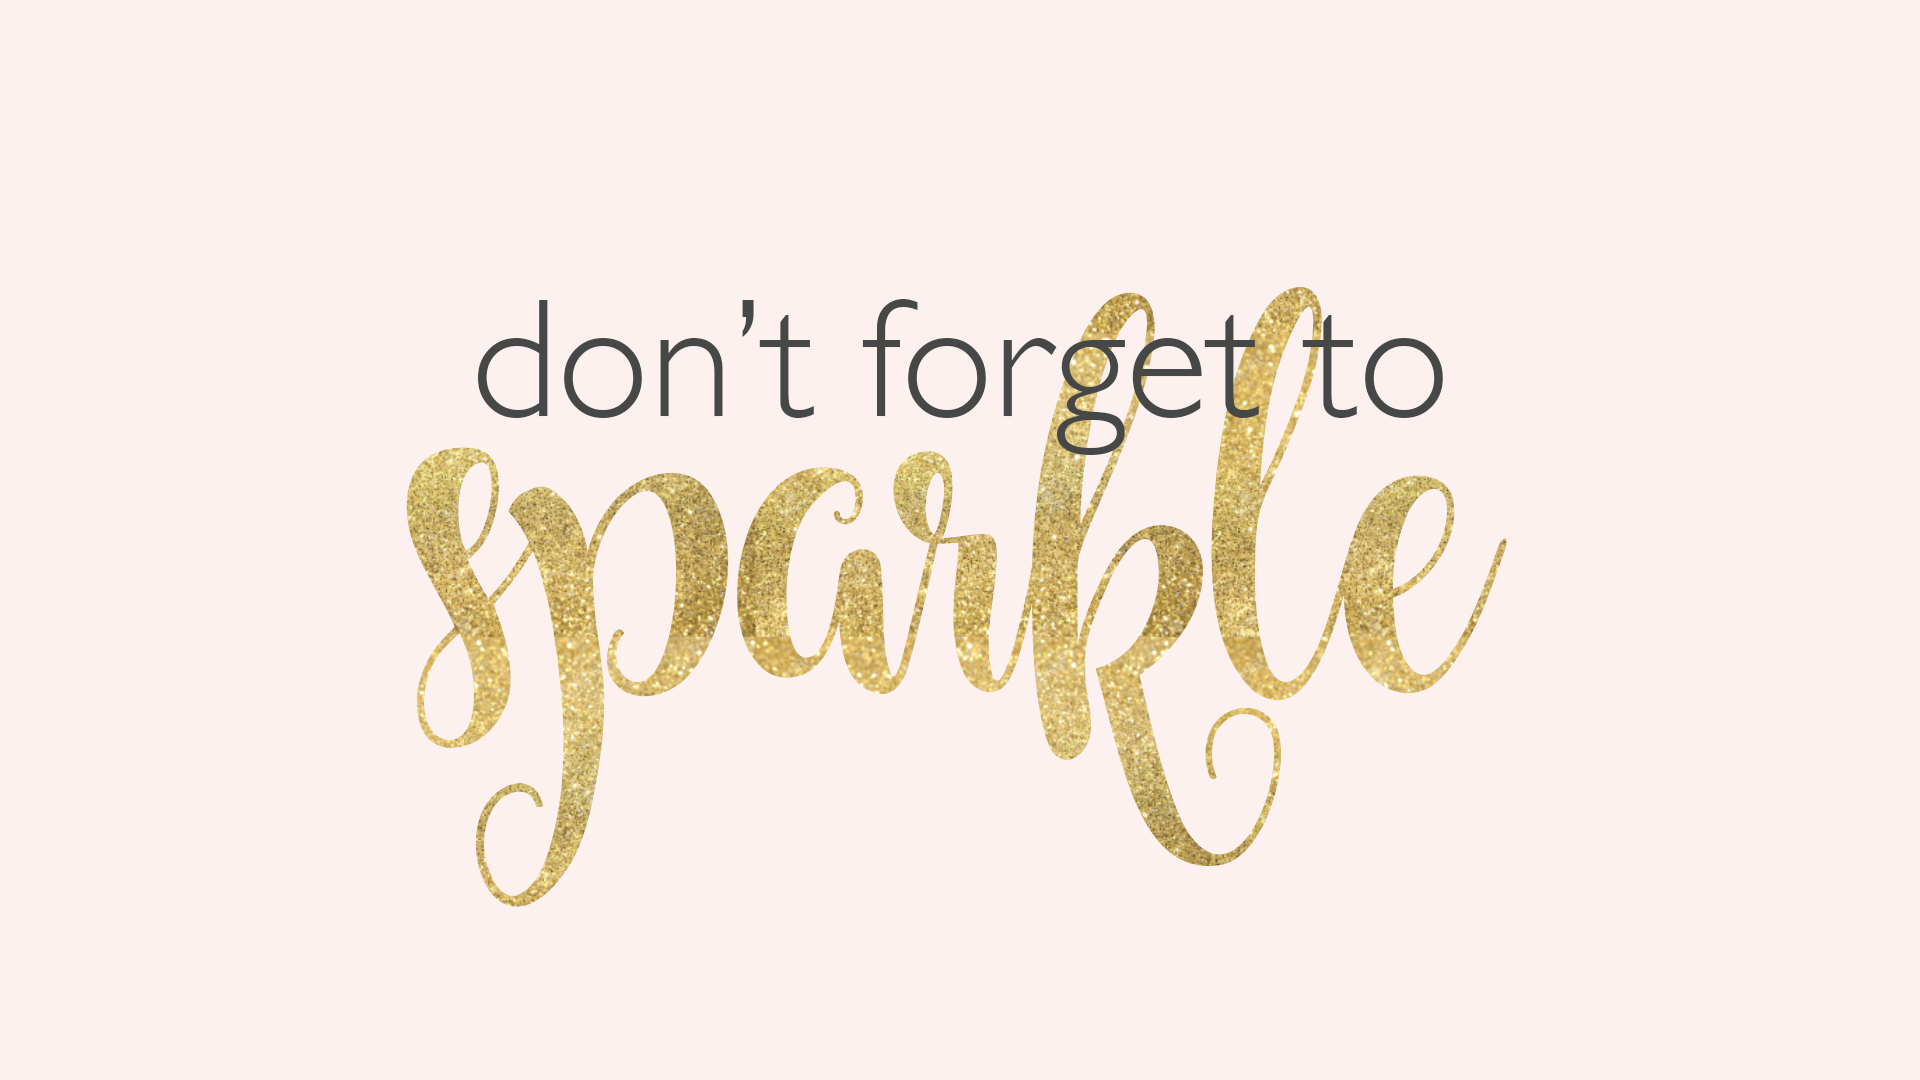 Don T Forget To Sparkle Motivational Quote For Desktop Background Wa Desktop Background Quote Inspirational Desktop Wallpaper Inspirational Quotes Wallpapers